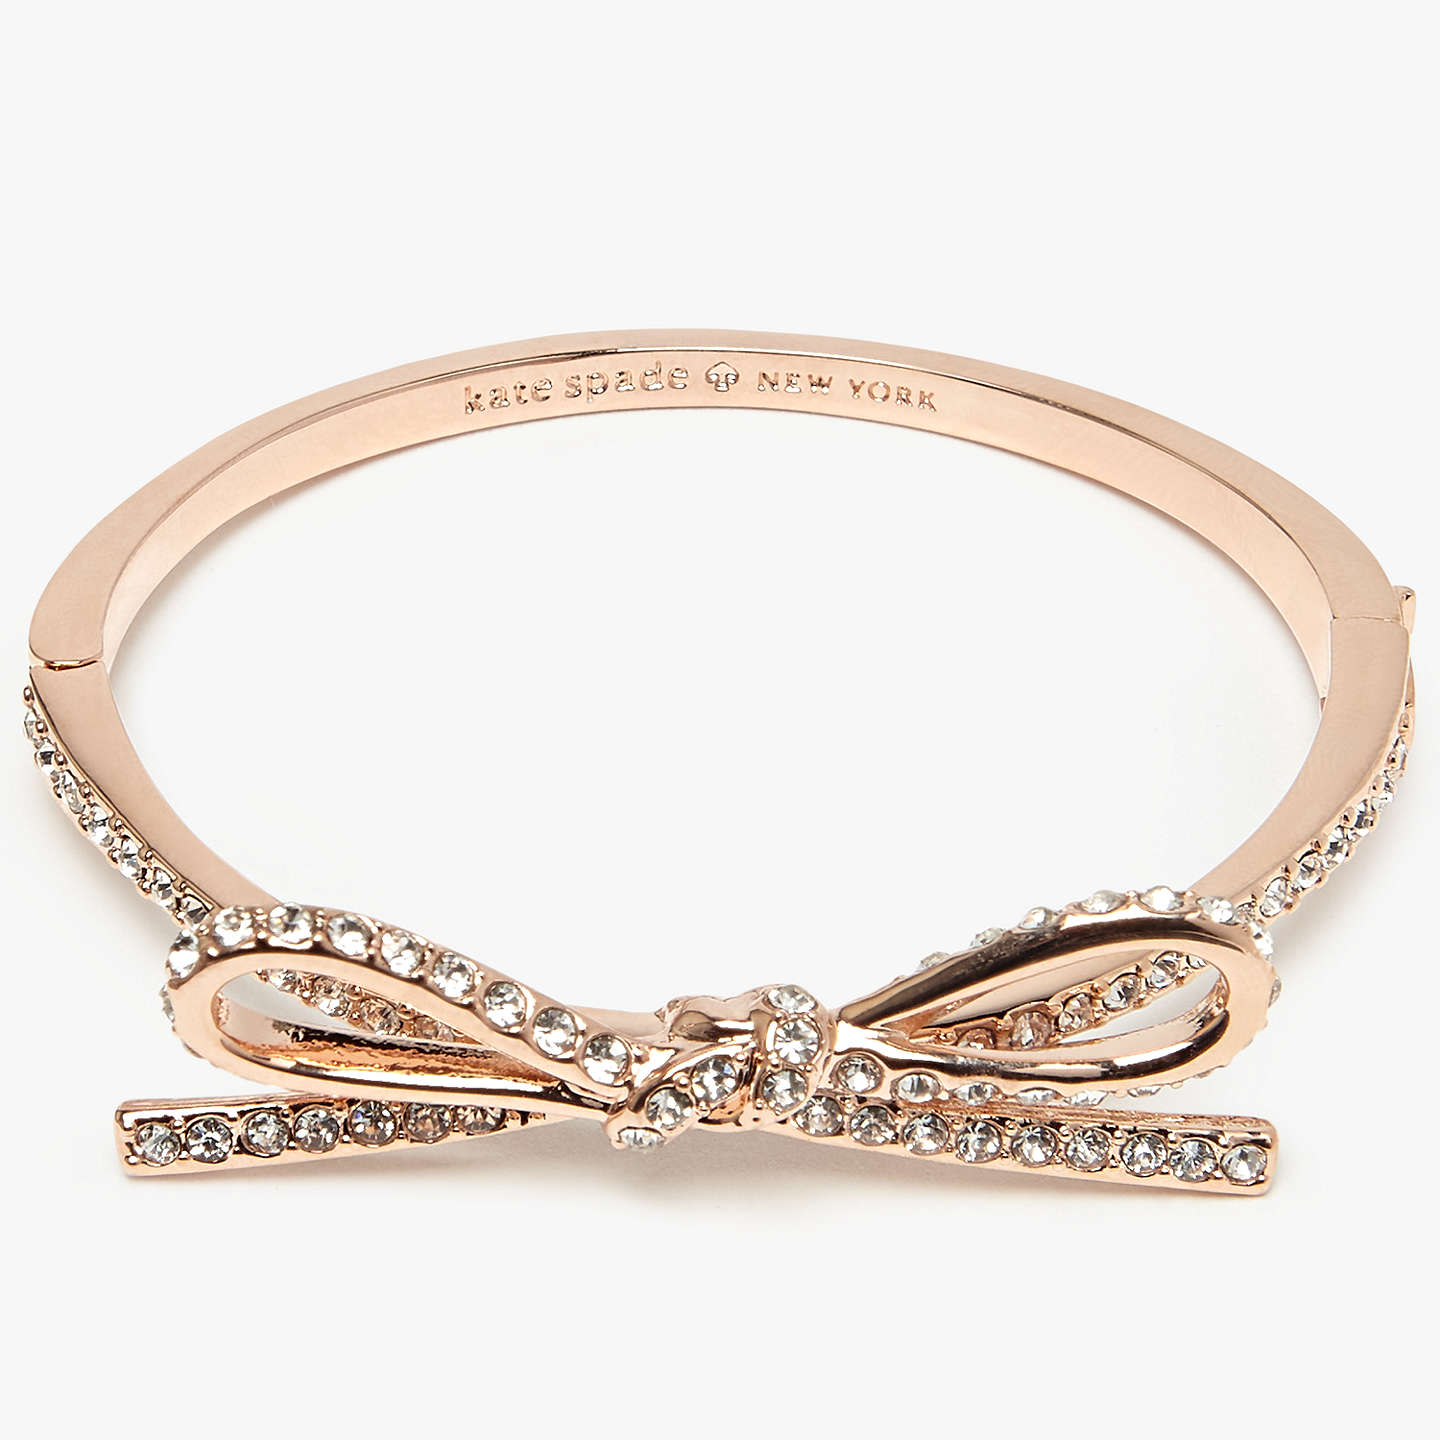 type rose new john bangle pdp rsp bracelet lewis johnlewis at buykate online pave bangles york com main kate gold bow spade